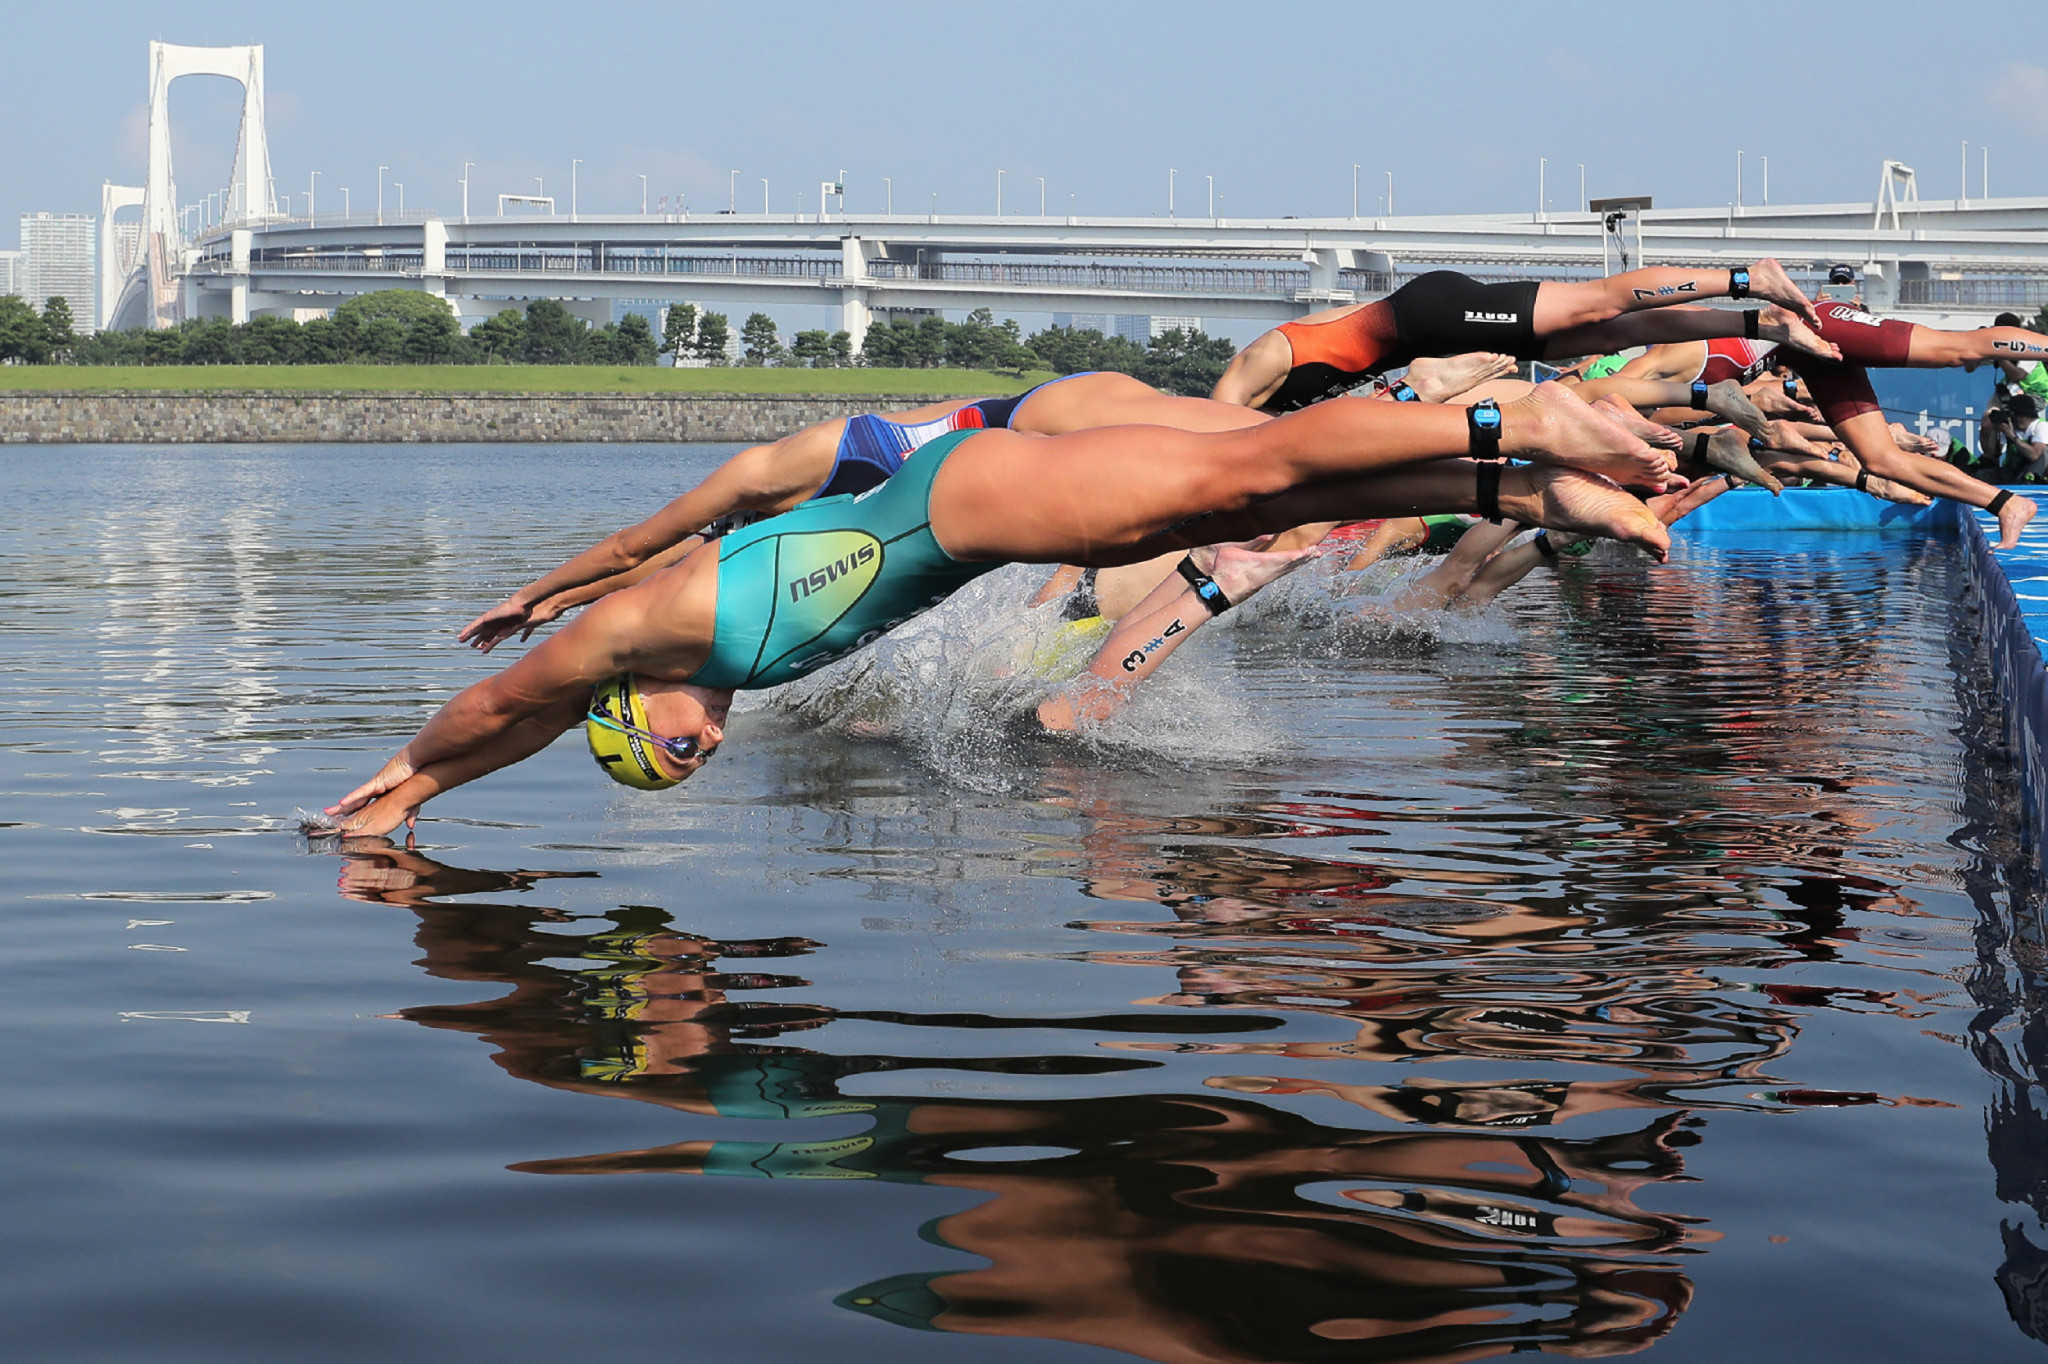 Triathlon and cross-country eventing start times at Tokyo 2020 moved forward due to heat